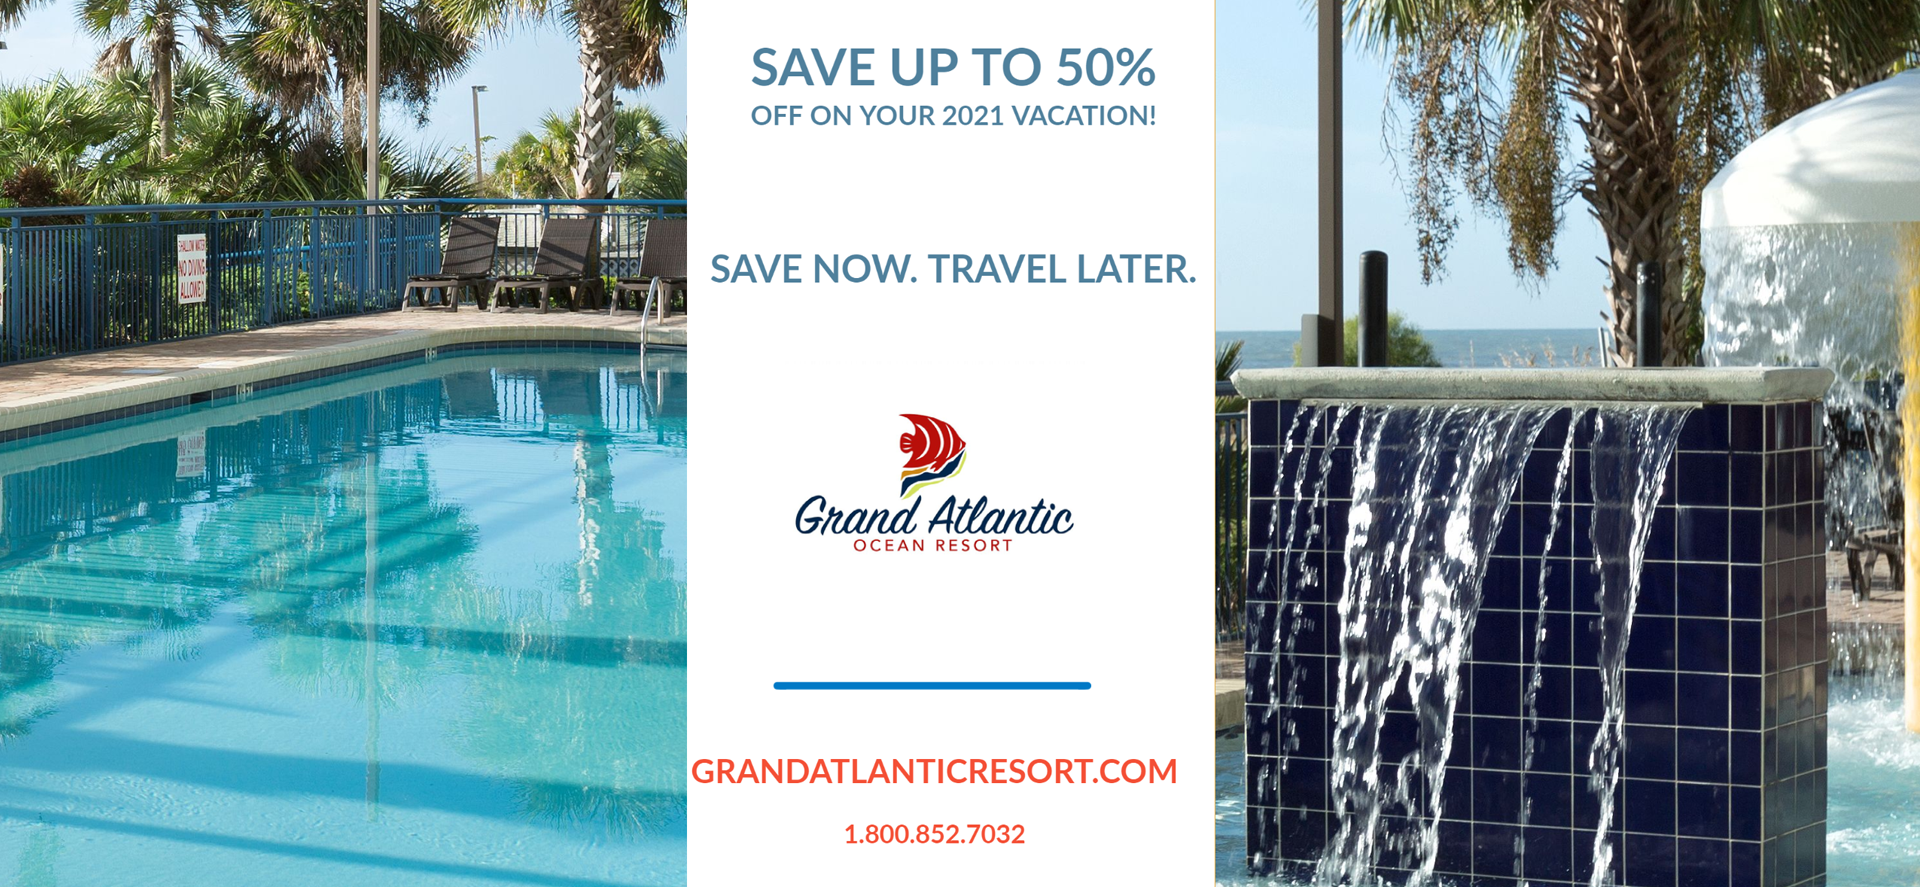 Save now. Travel Later